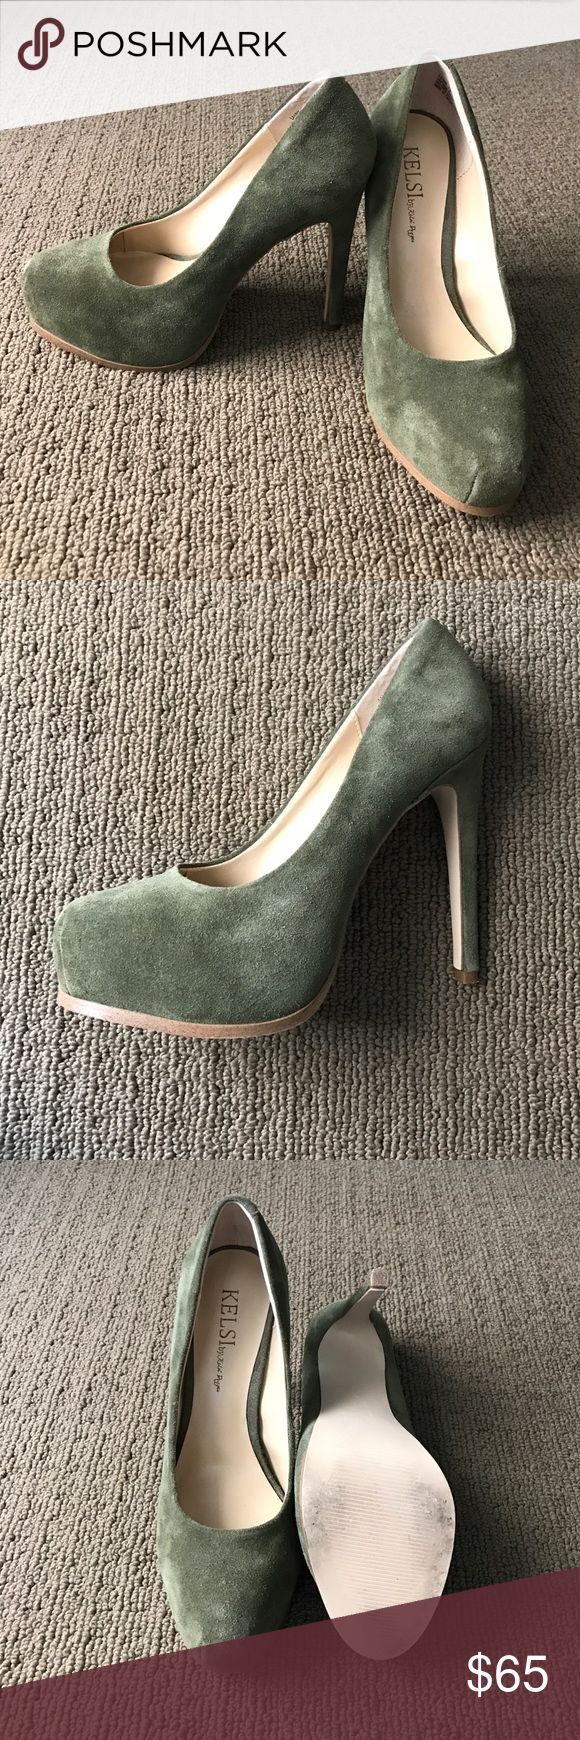 "Kelsi Dagger Suede "" Linzy"" Pumps Army green suede. Hidden platform. Size 7. Worn once- perfect condition! Kelsi Dagger Shoes Heels"